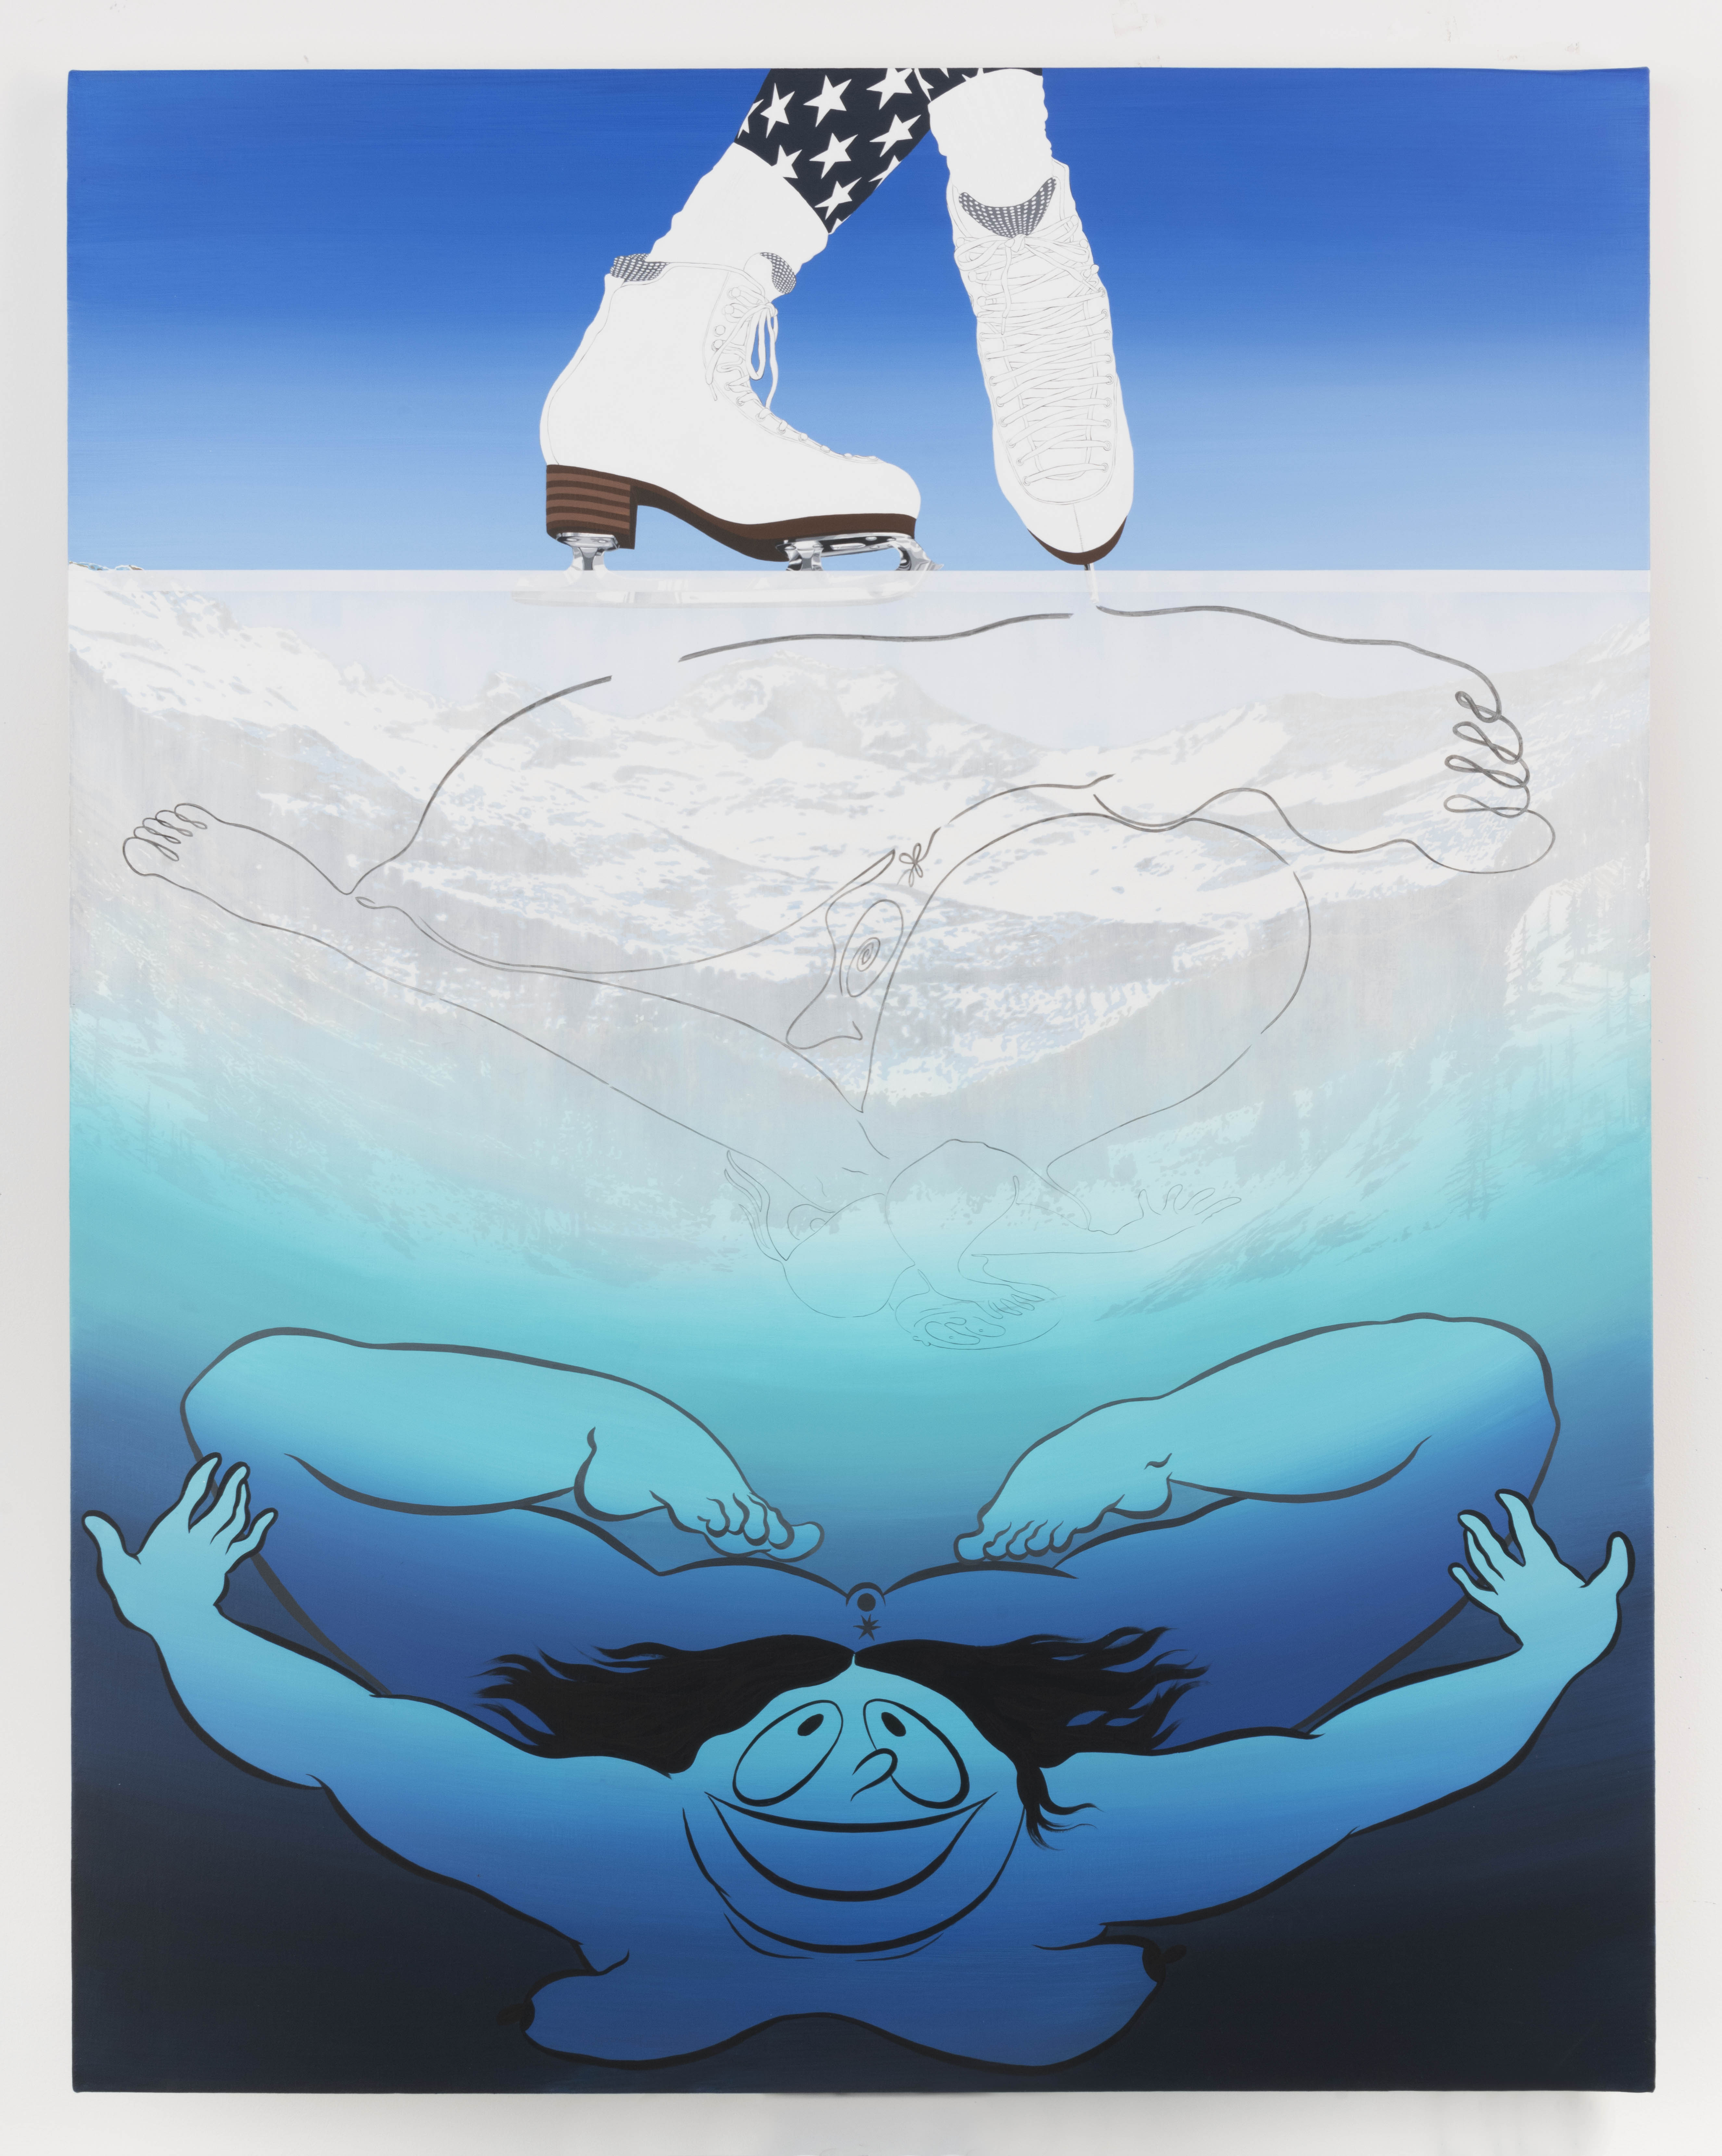 Ebecho Muslimova, Fatebe Thin Ice Skating, 2018, acrylic and oil on canvas, 54h x 41.75w in.